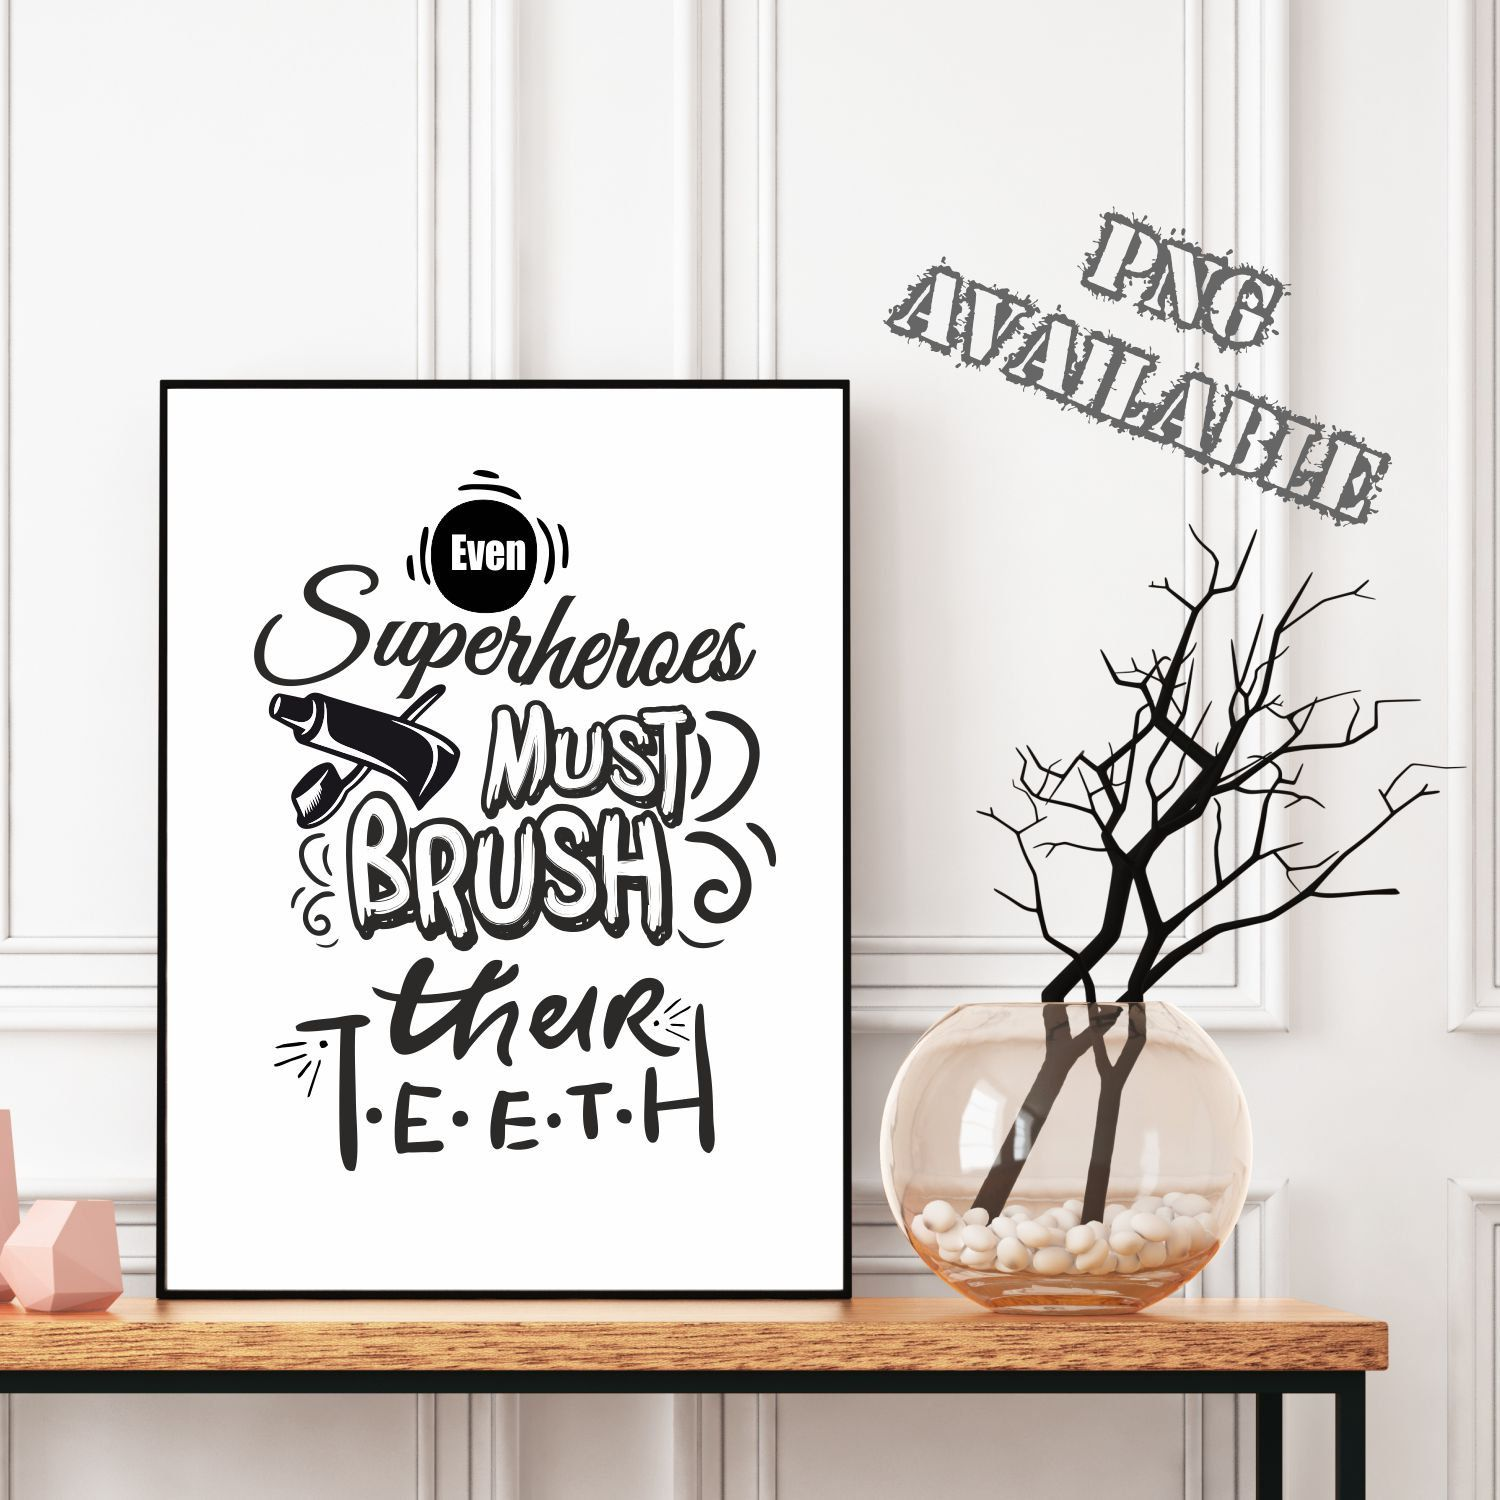 Typography Bathroom Funny Quotes Art Funny Bathroom Print Modern Toilet Decor Bathroom Sign Bathroom Printable Art Bathroom Decor Art Quotes Funny Printable Wall Art Printable Art